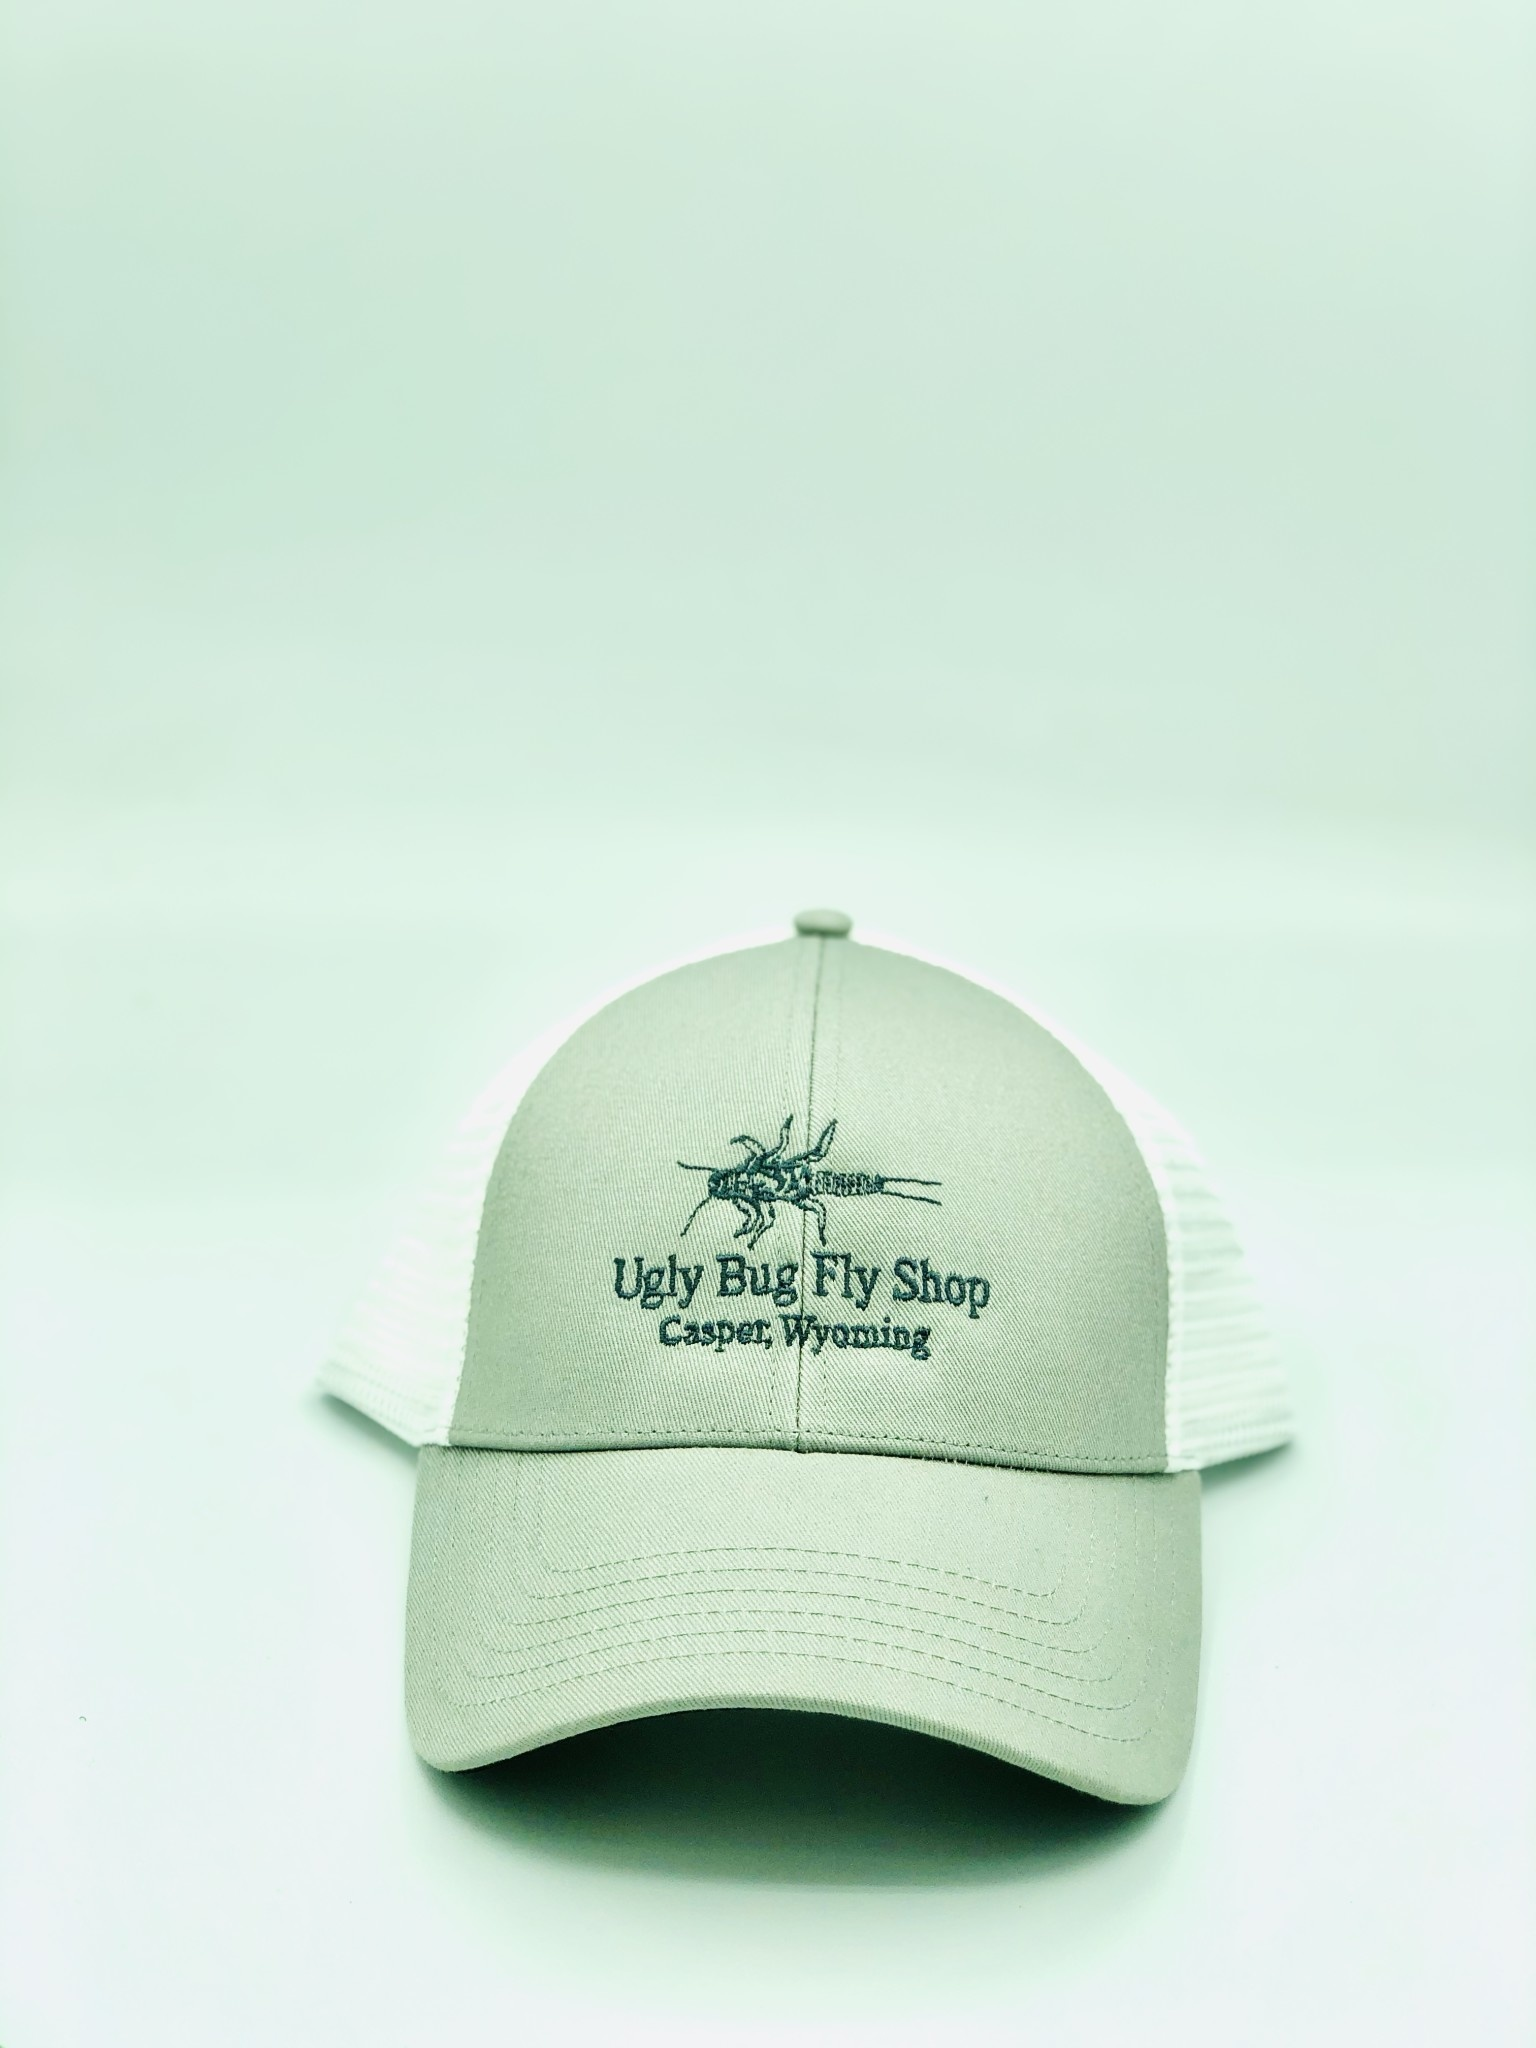 Simms Fishing Products Simms CBP Small Fit Trucker Custom Ugly Bug Hat